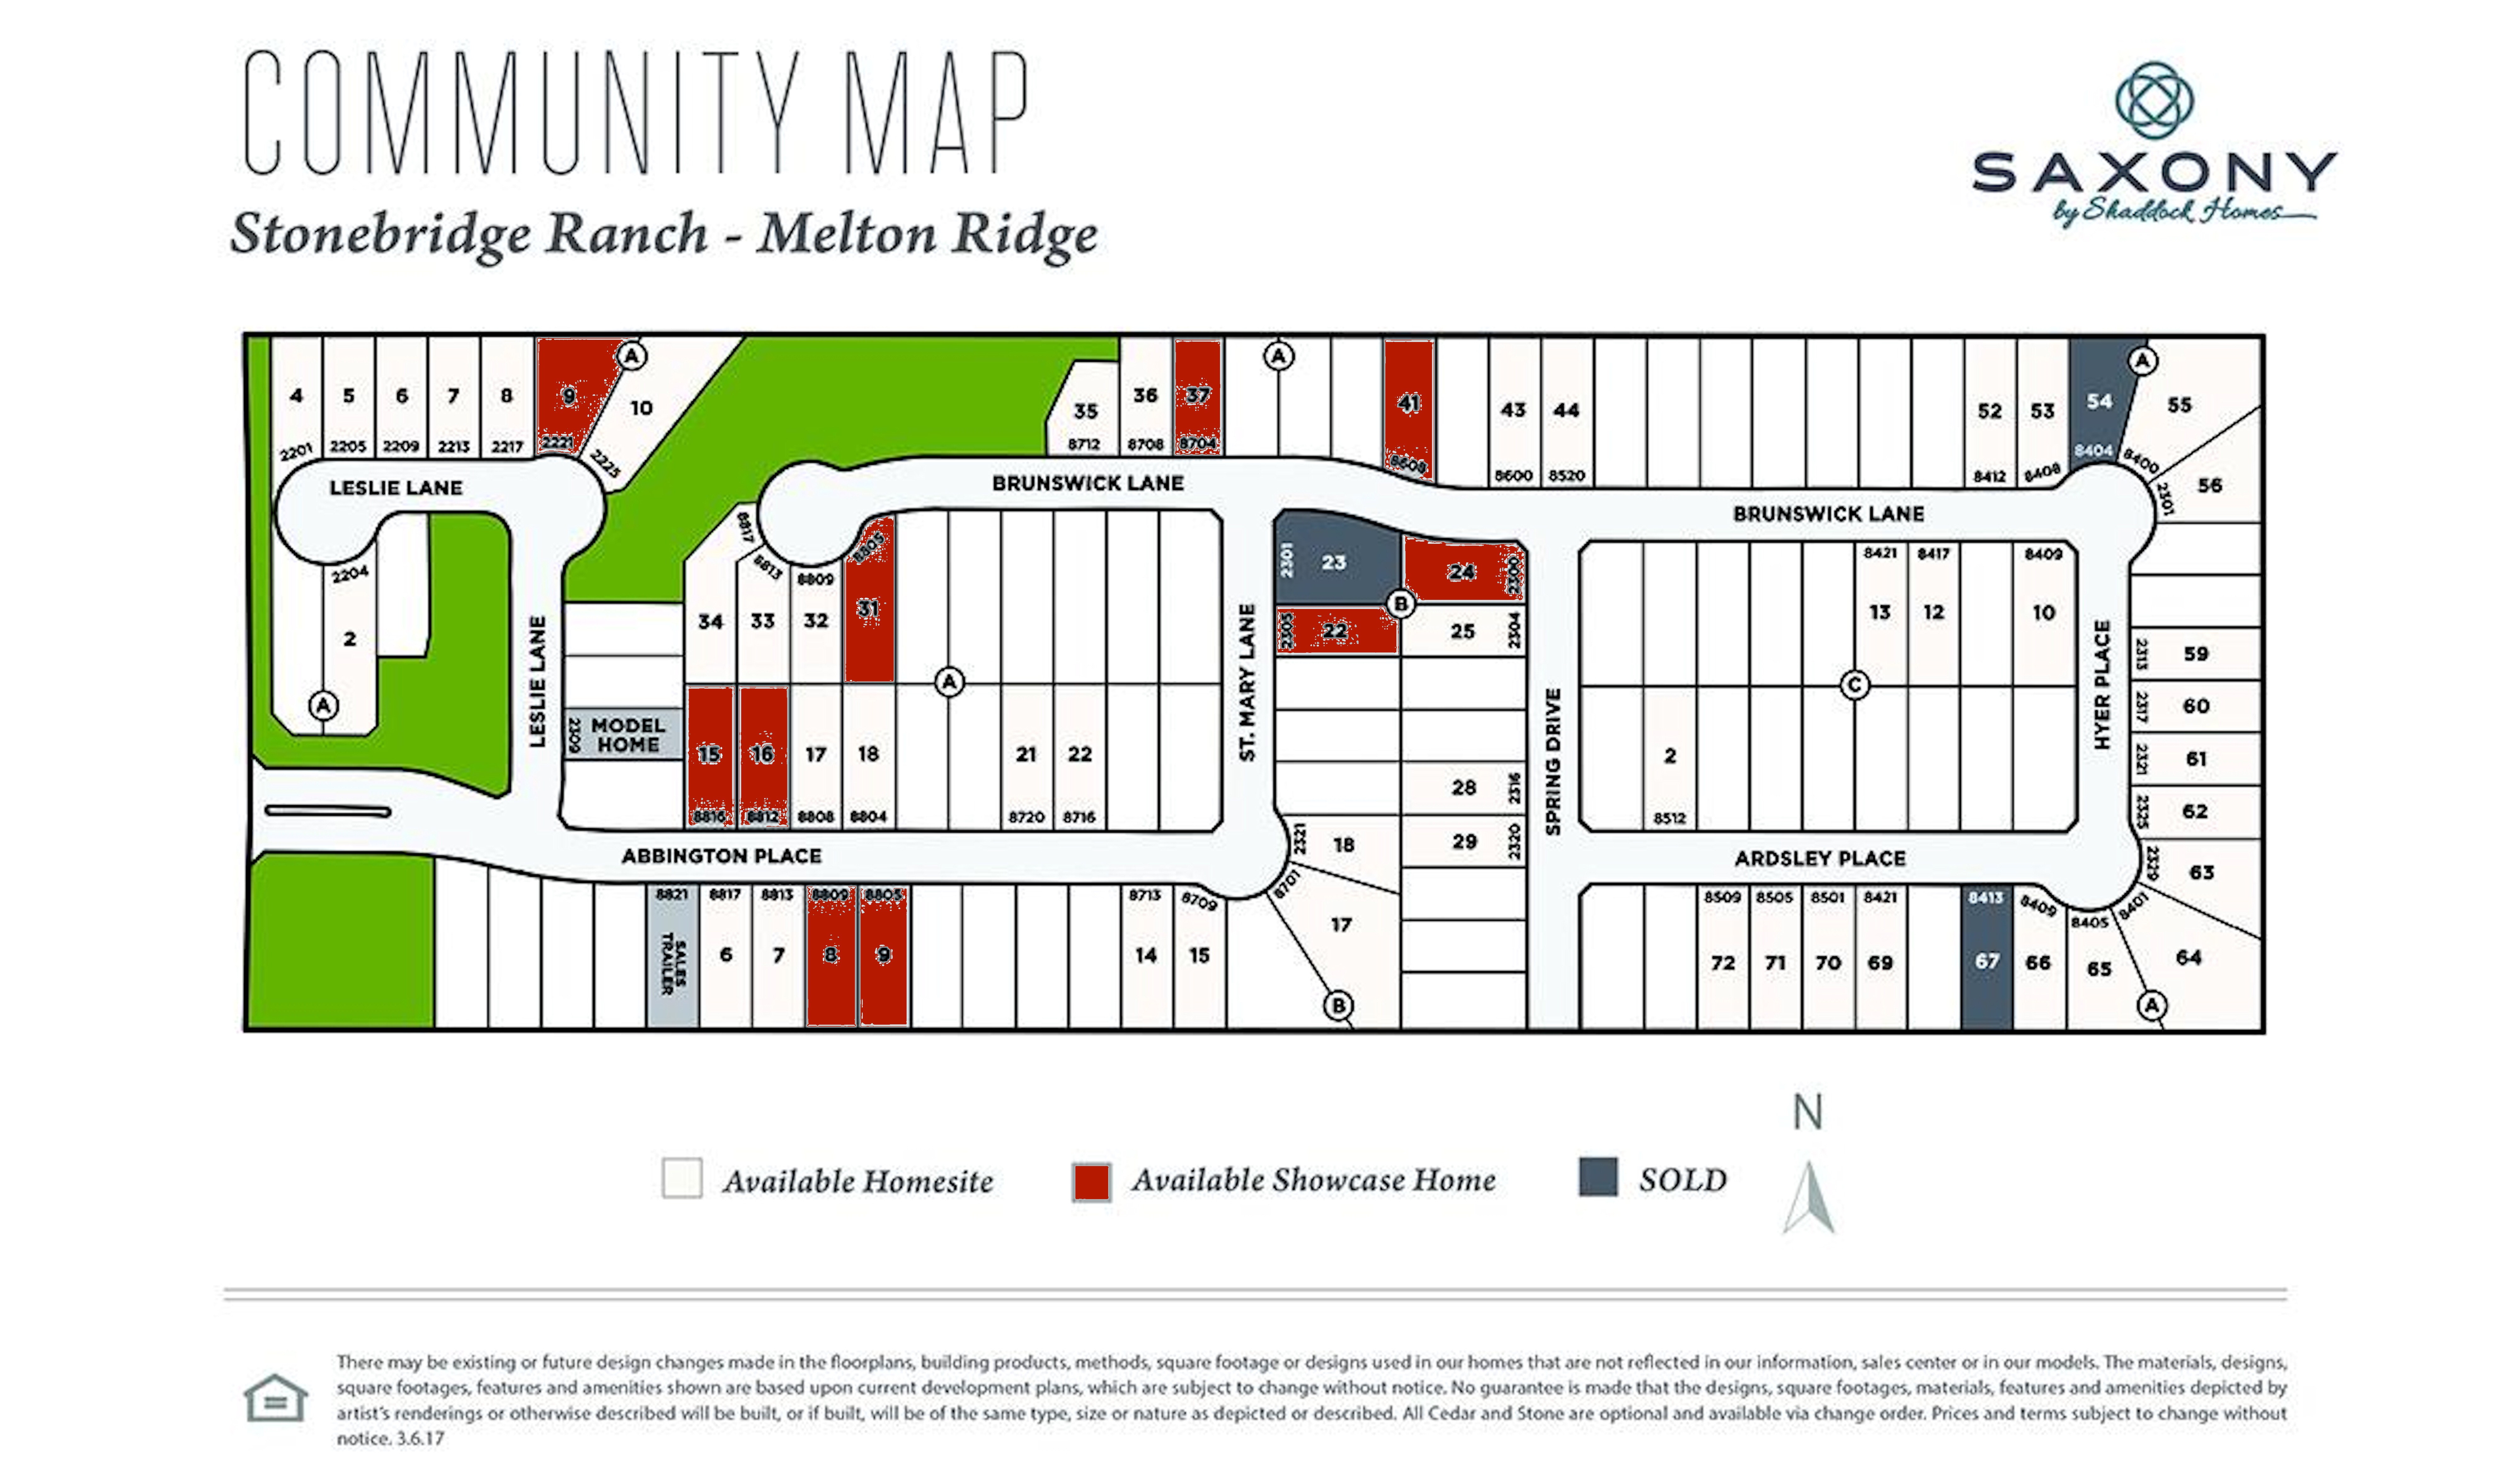 mckinney homes update frisco richwoods lexington frisco saxony at melton ridge offers 8 amazing floor plans they currently have 10 spots for showcase homes being constructed as well as some really great lots